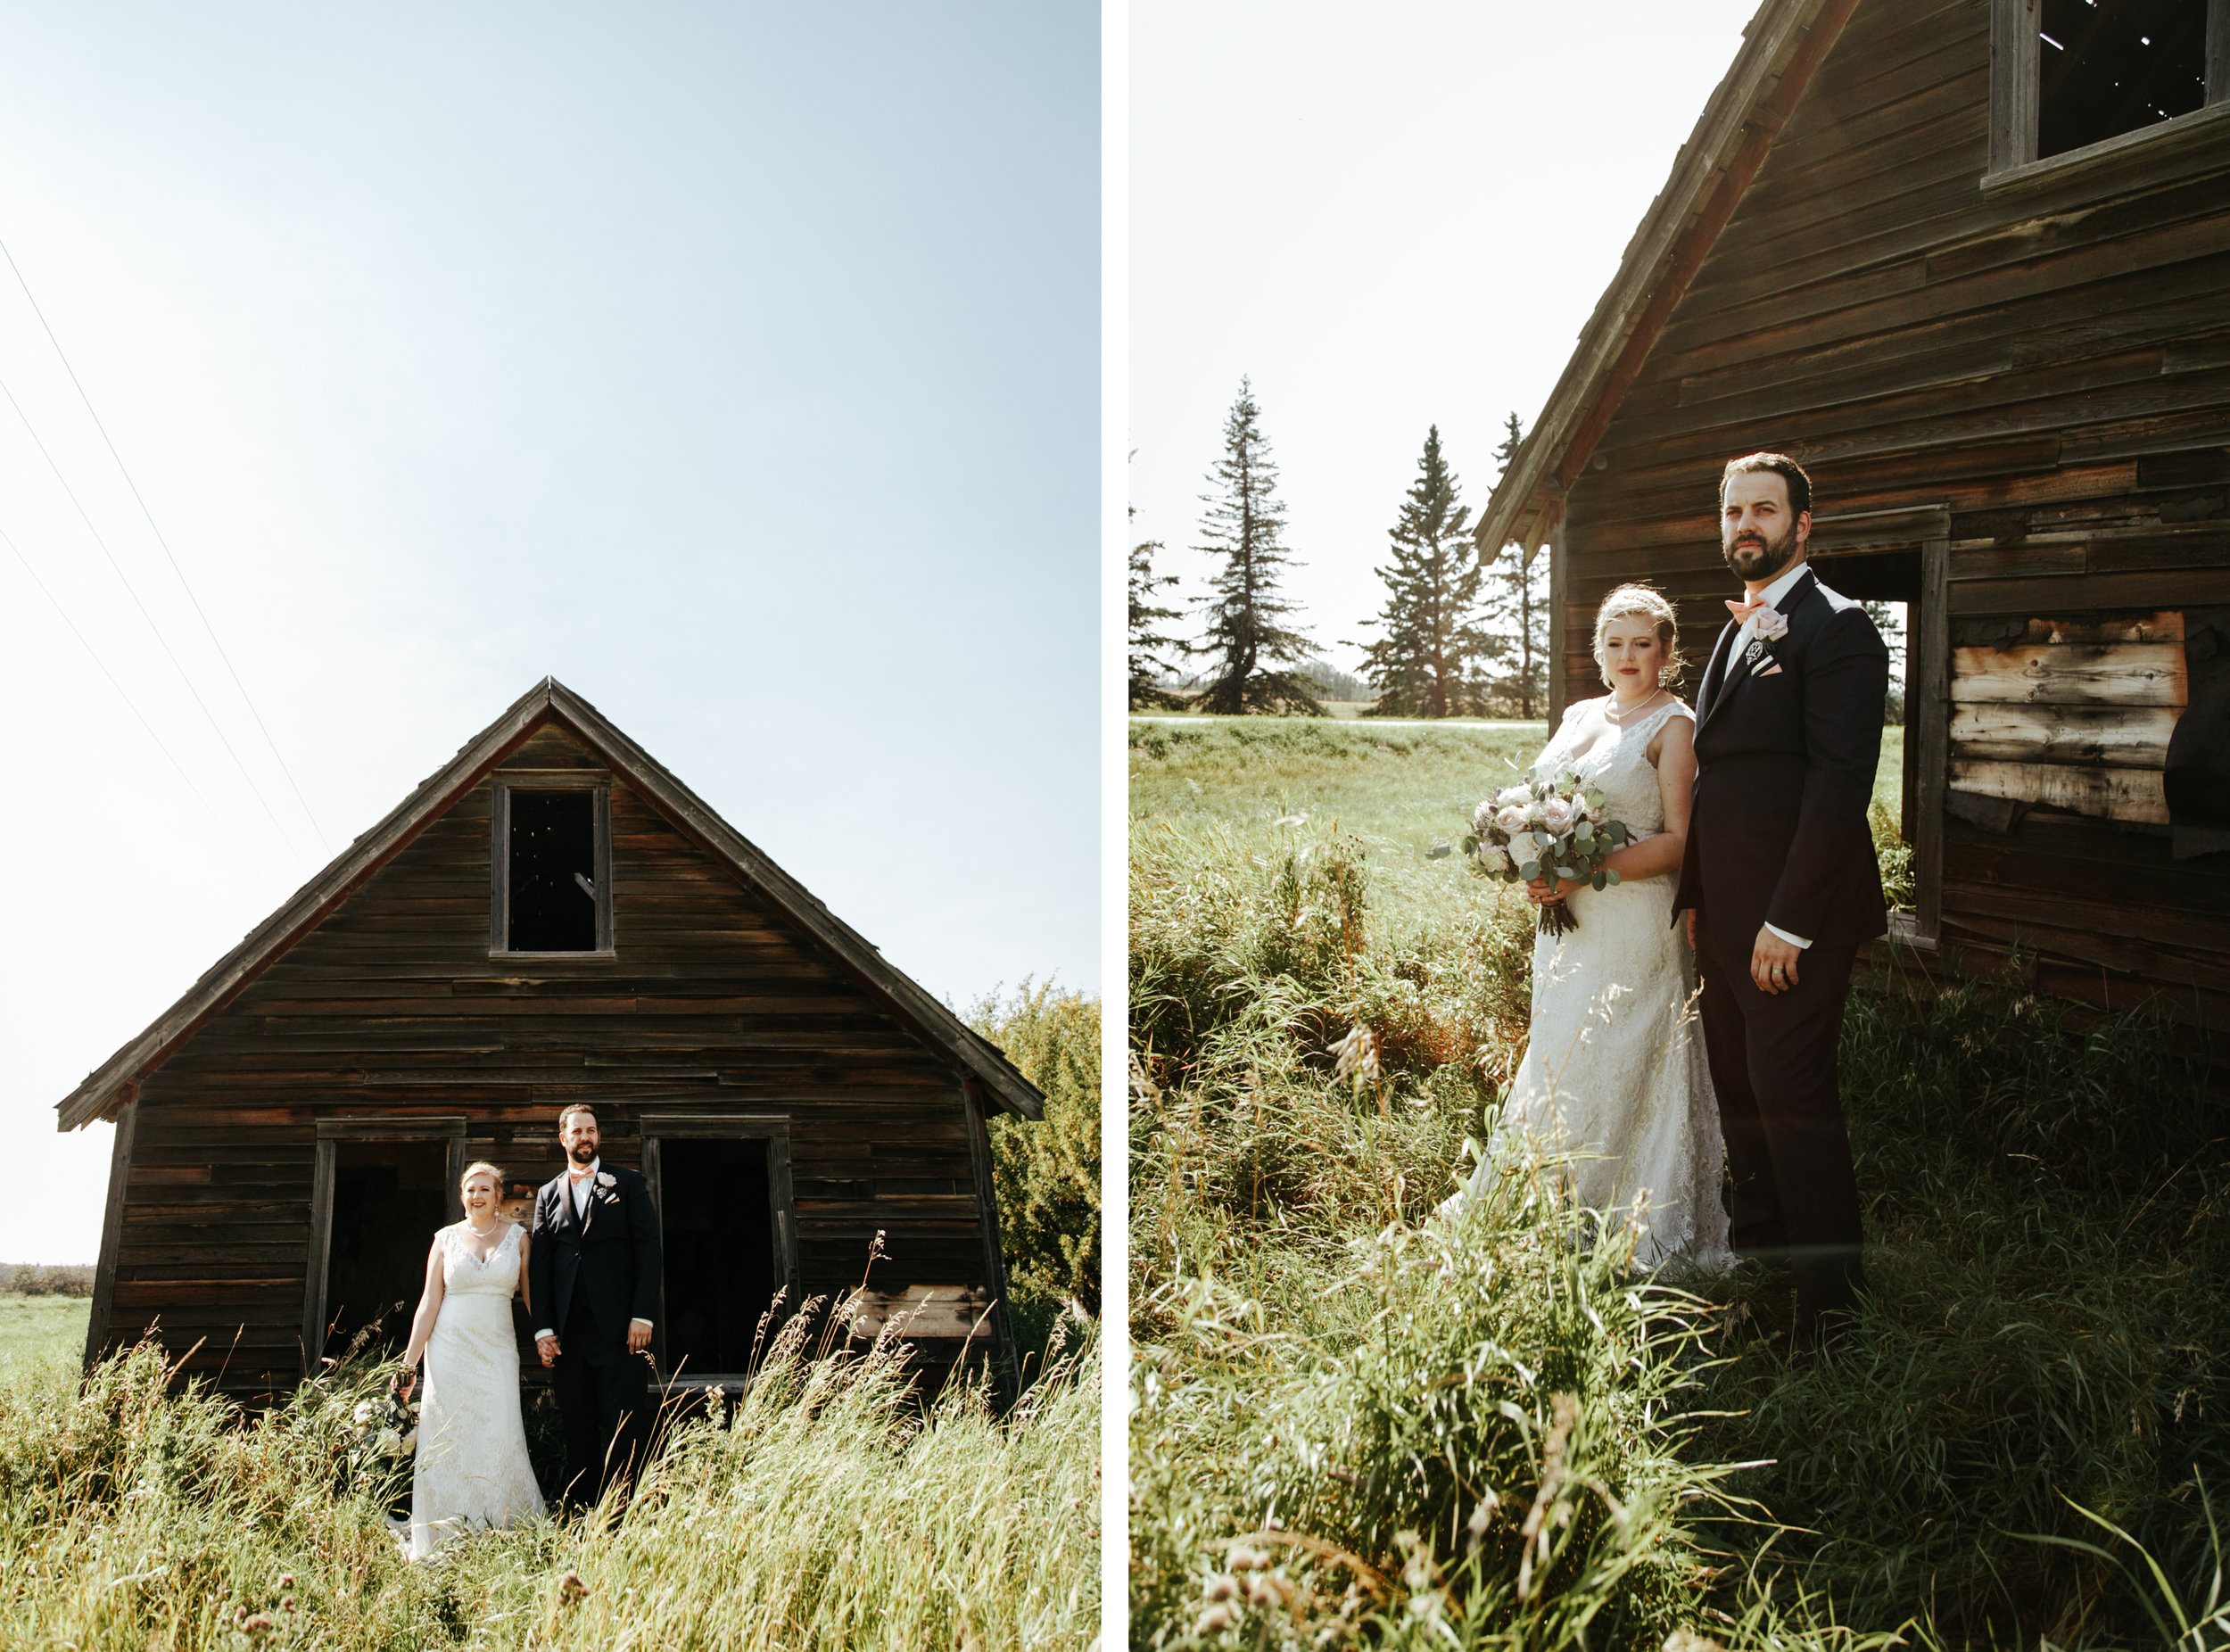 red-deer-wedding-photographer-love-and-be-loved-photography-emily-gab-photo-image-picture-128.jpg